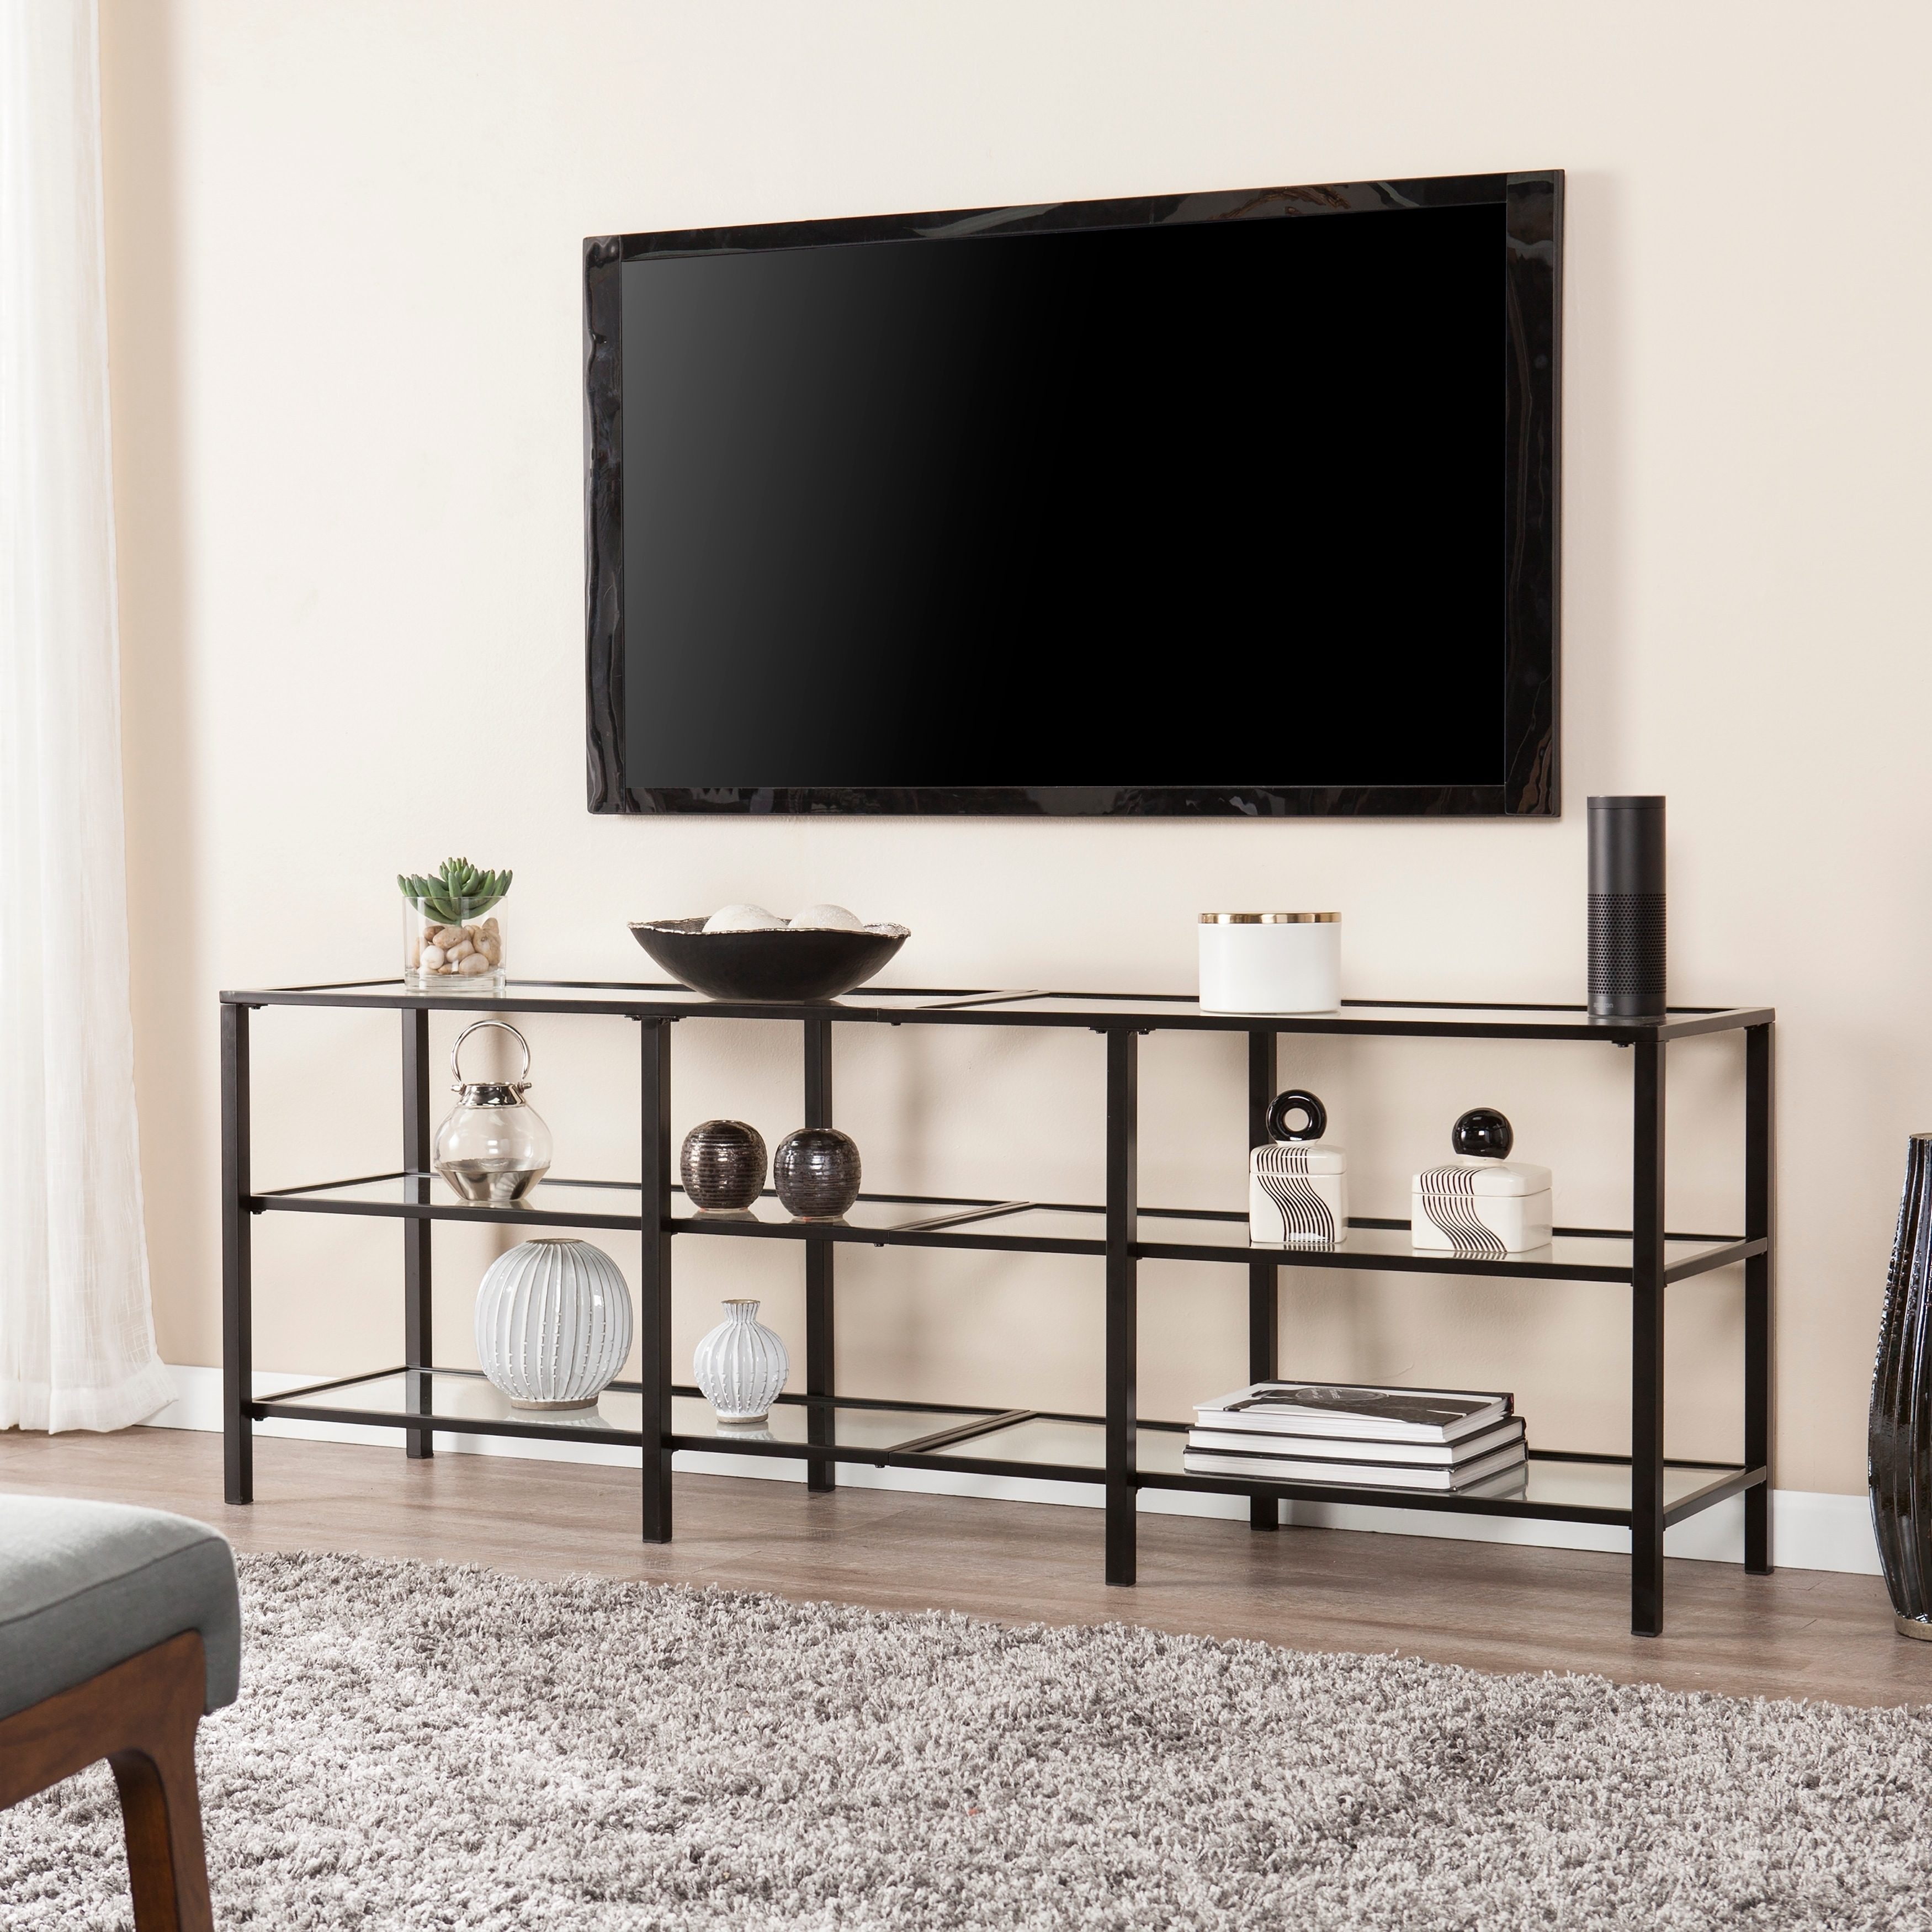 Shop Porch Den Liberty Black Metal And Glass Tv Stand On Sale